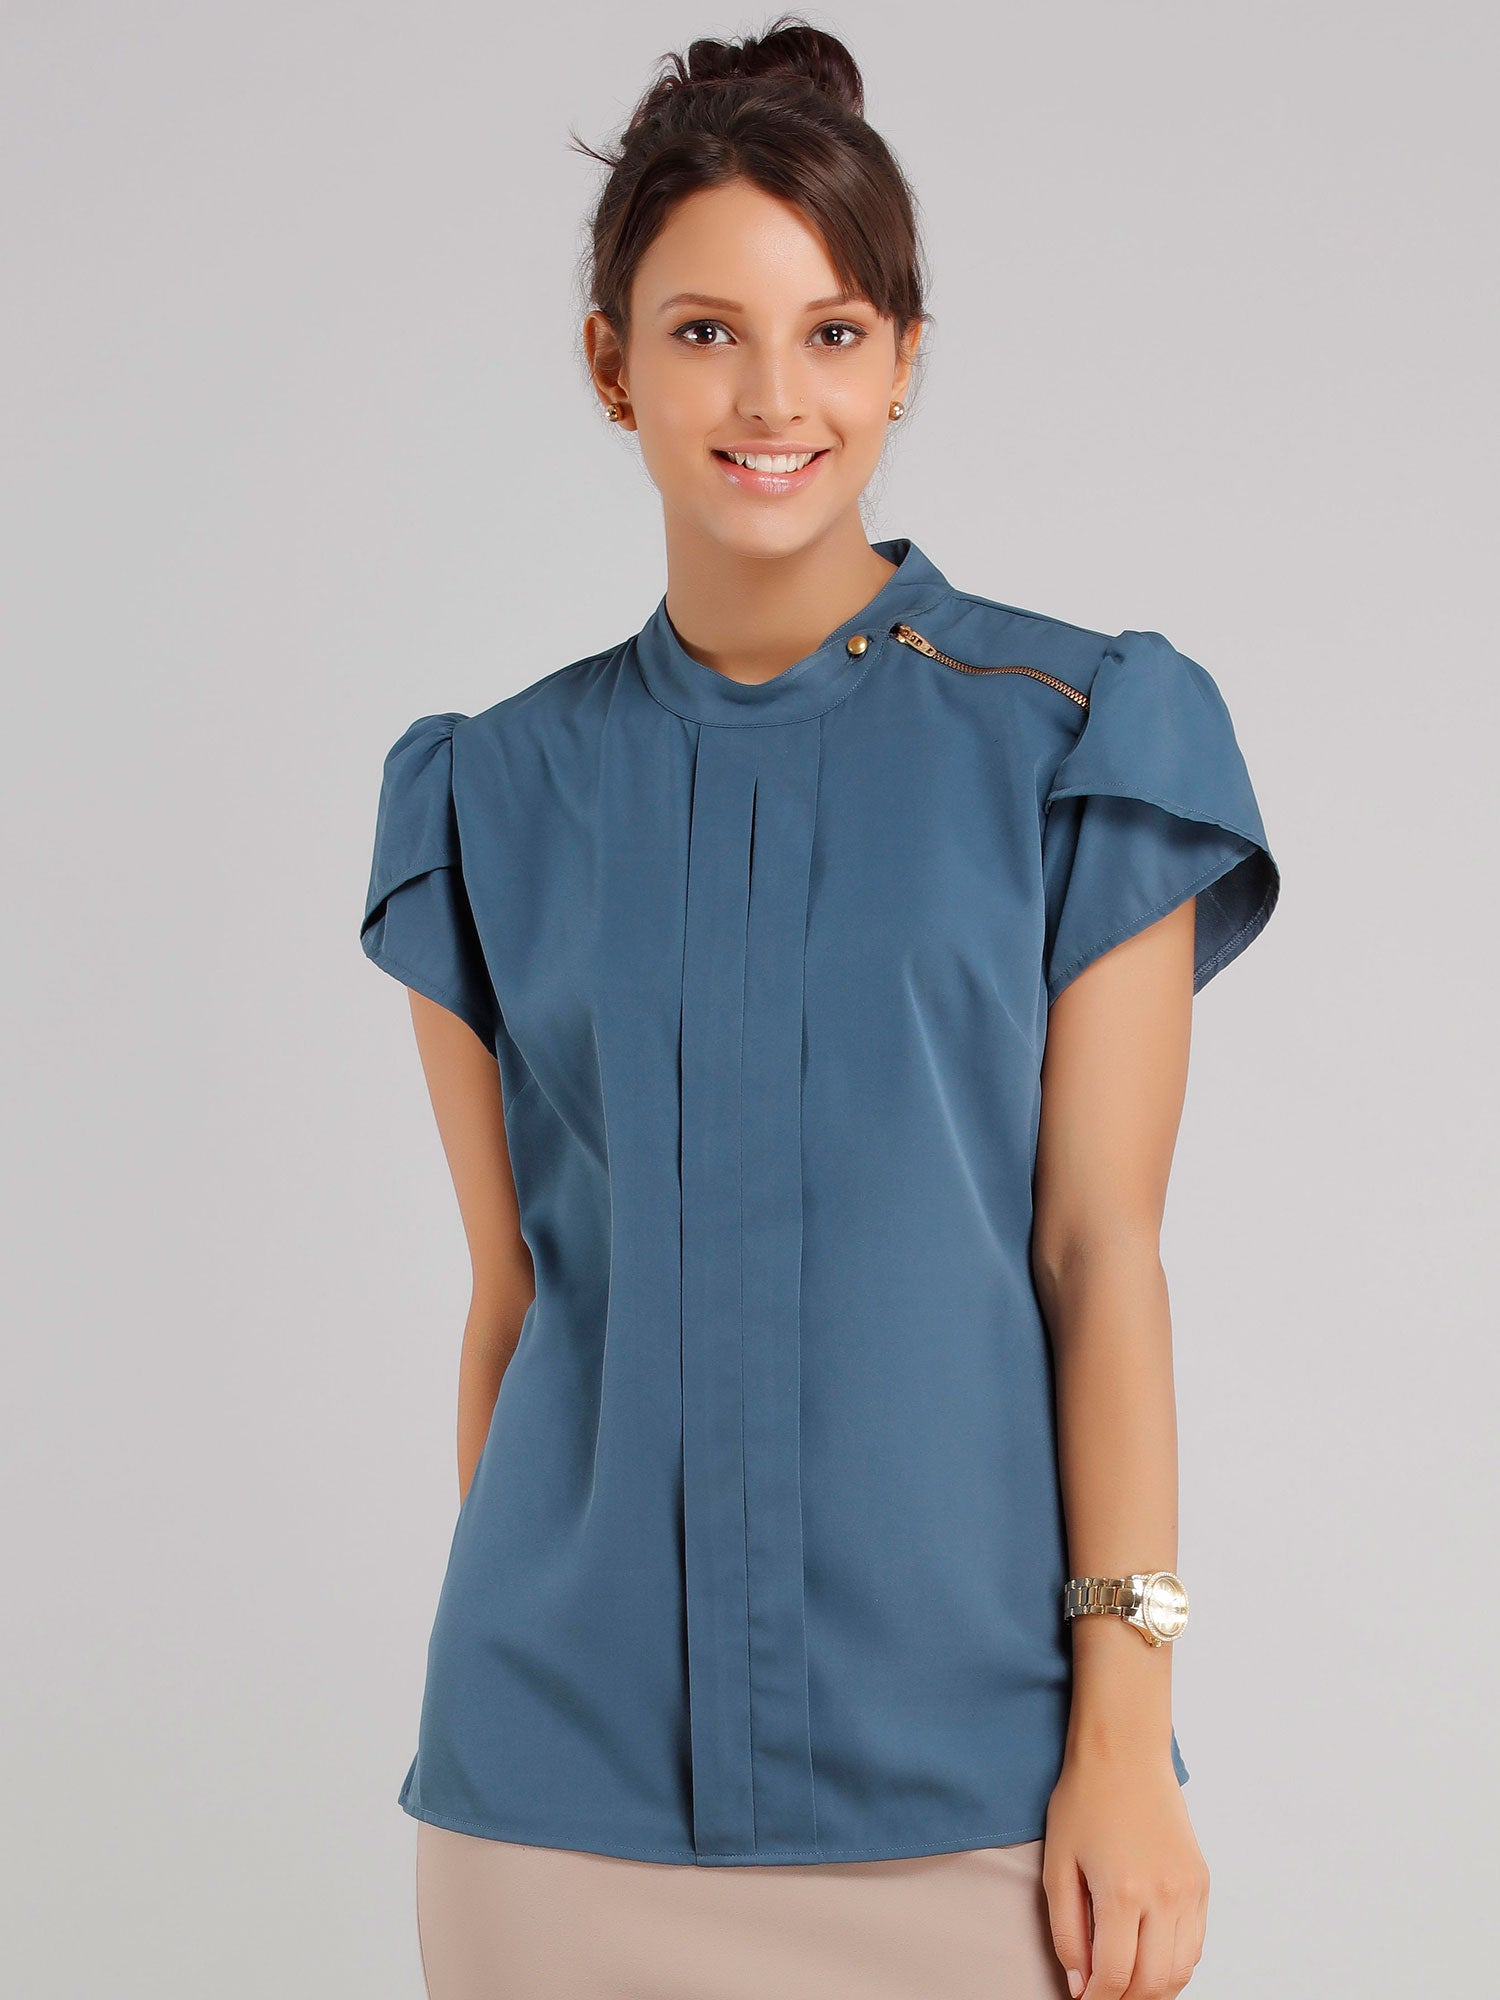 Collared Zipper Top - Blue